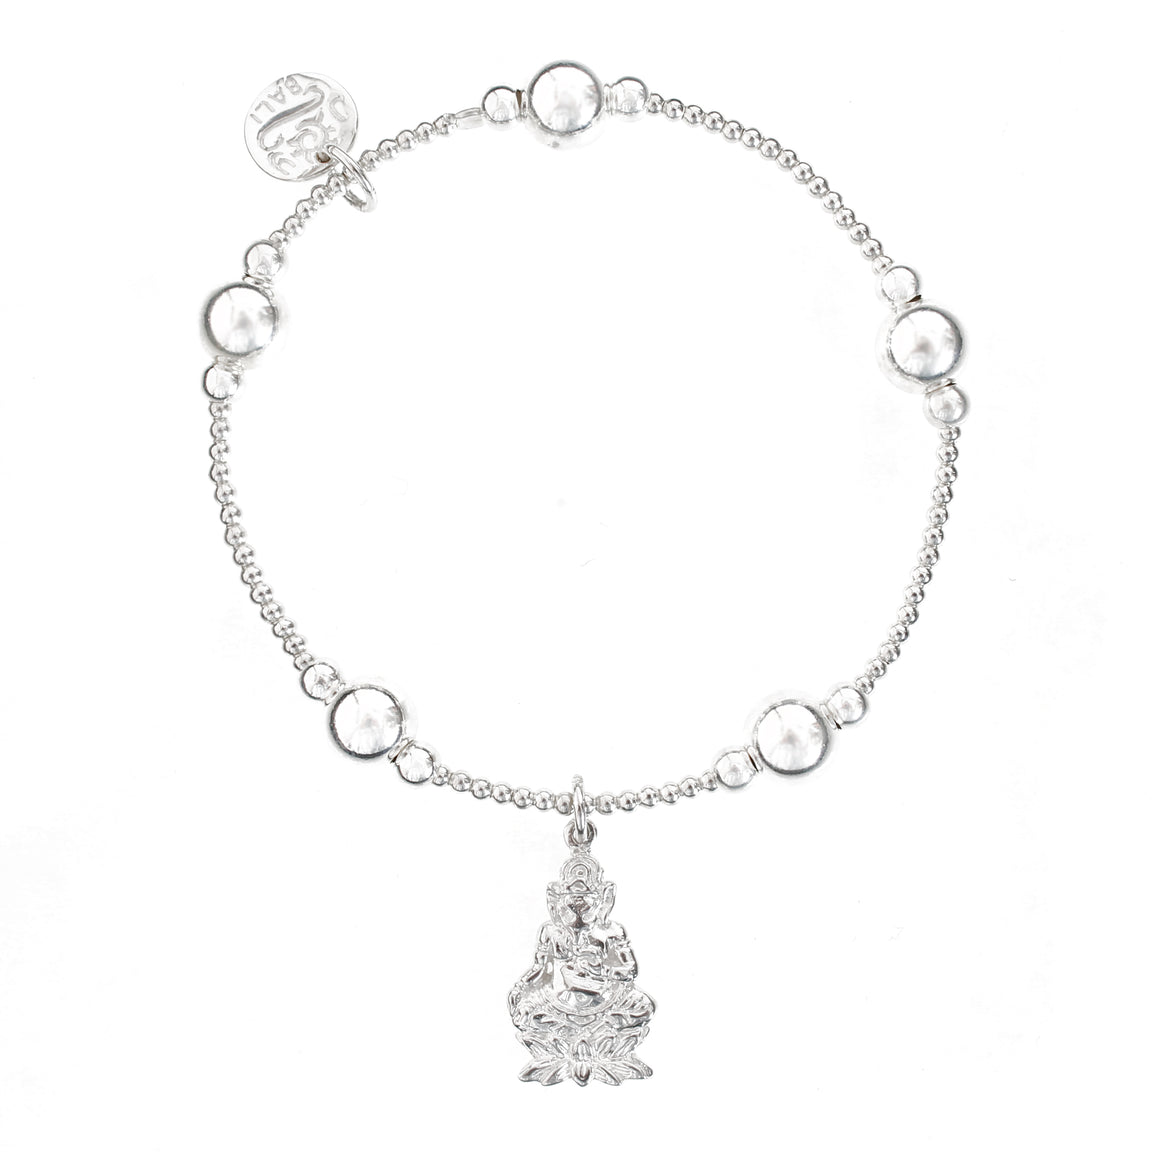 Ganesh Bali Ball Bracelet - good charma